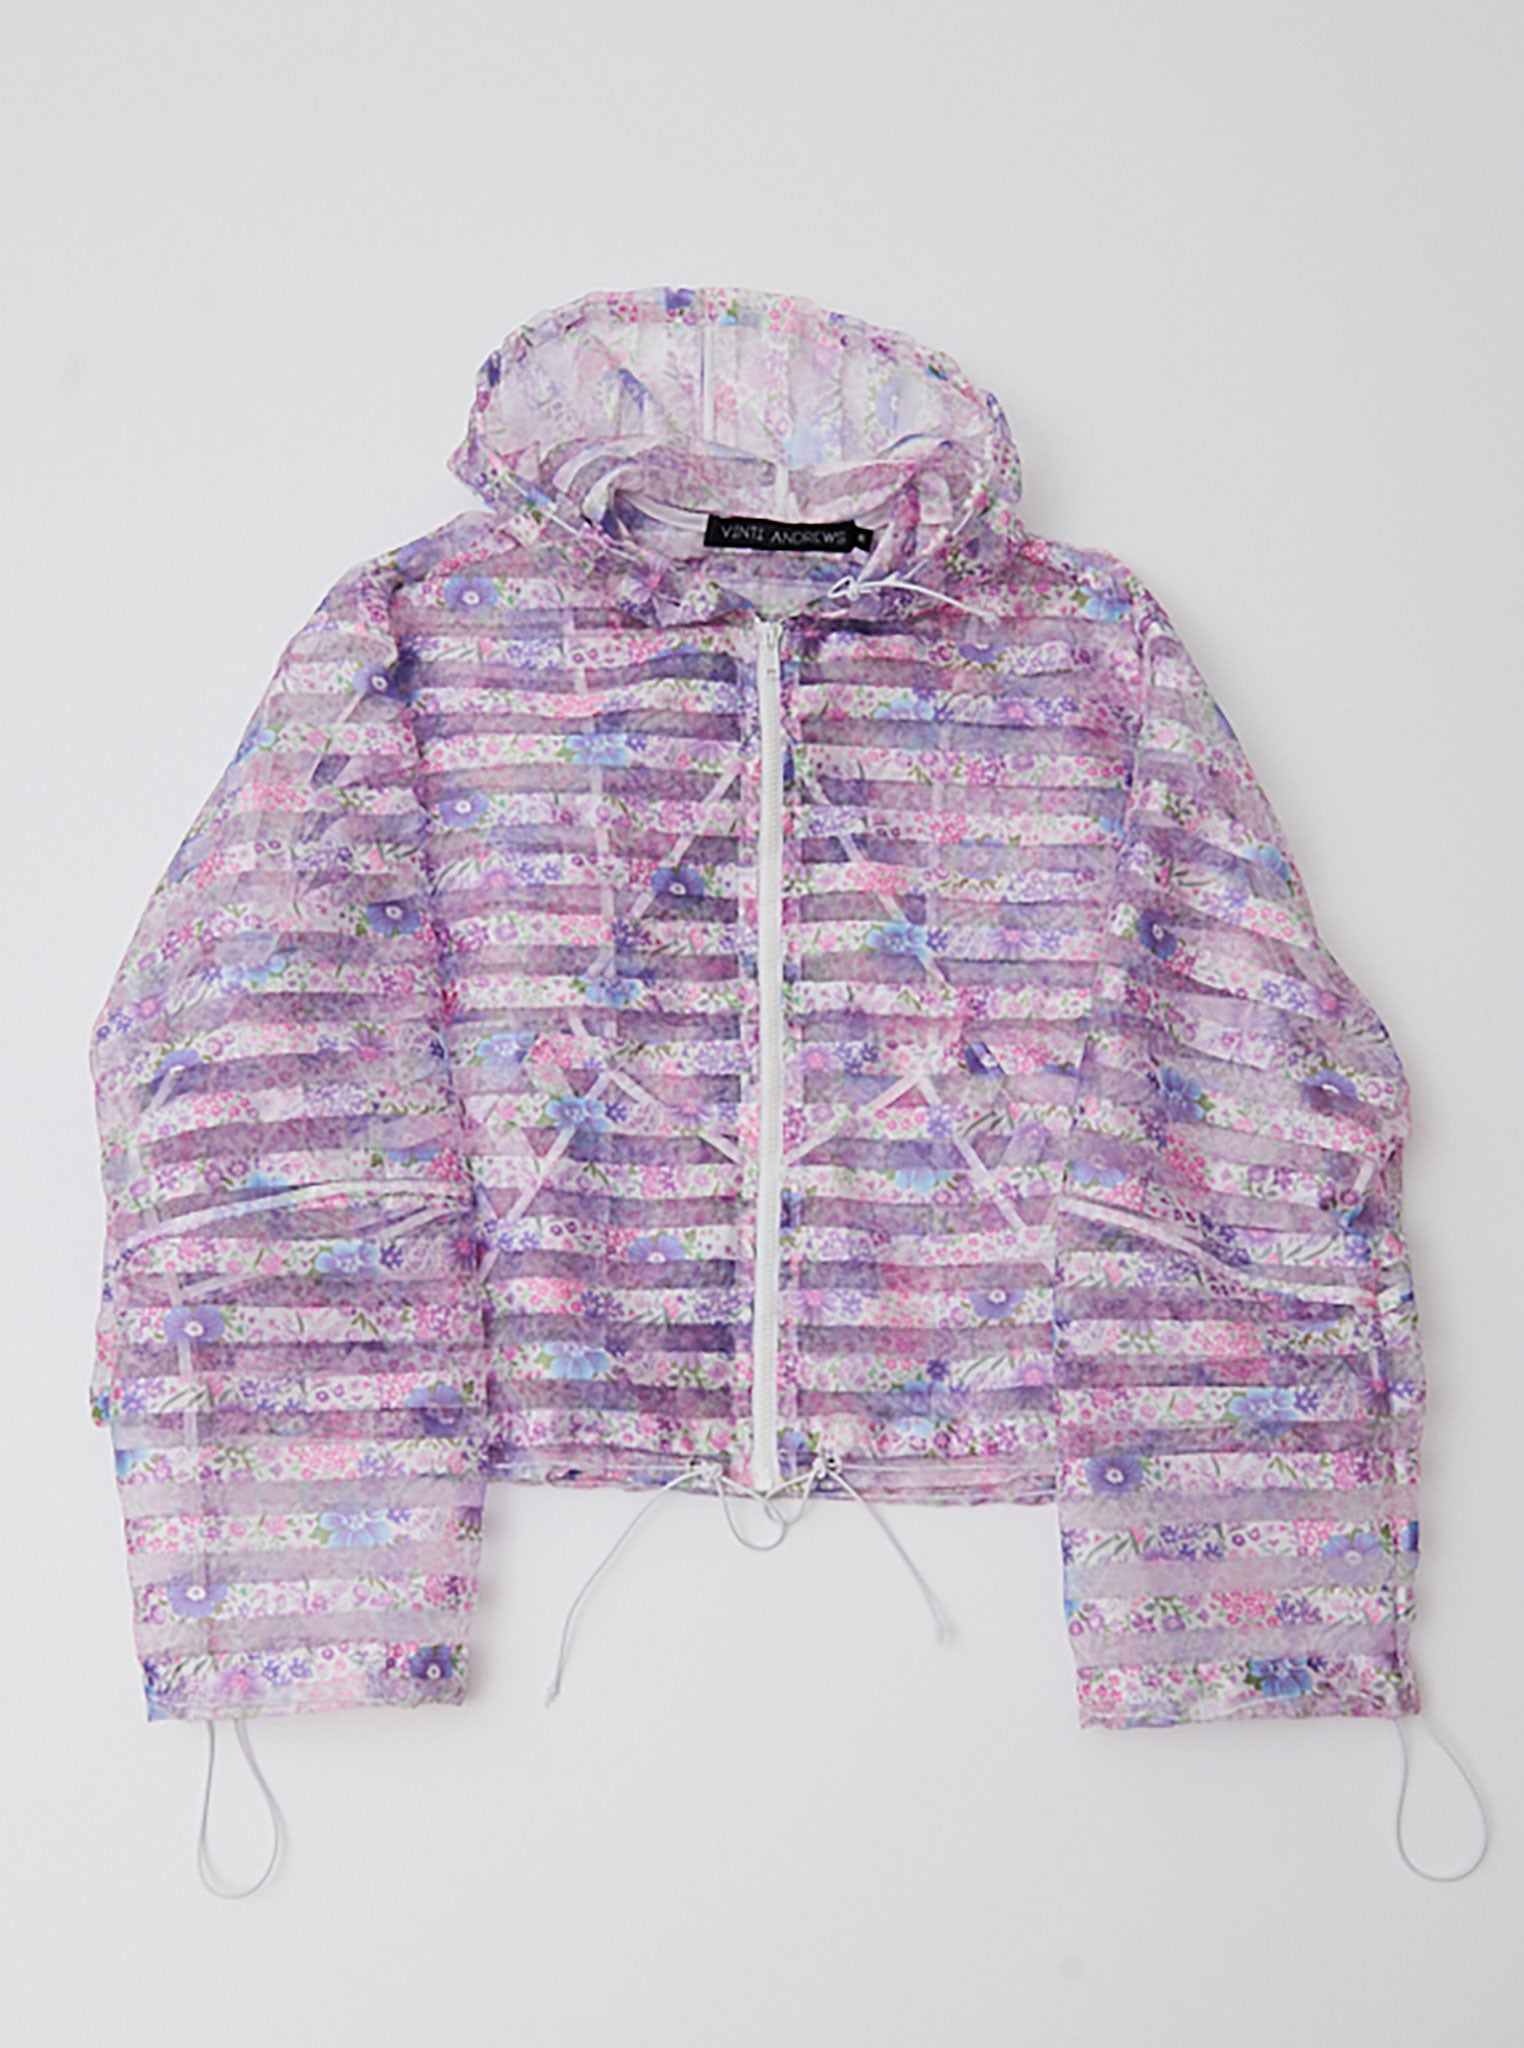 Vinti Andrews Lilac Motif Crop Zip Up Hoody